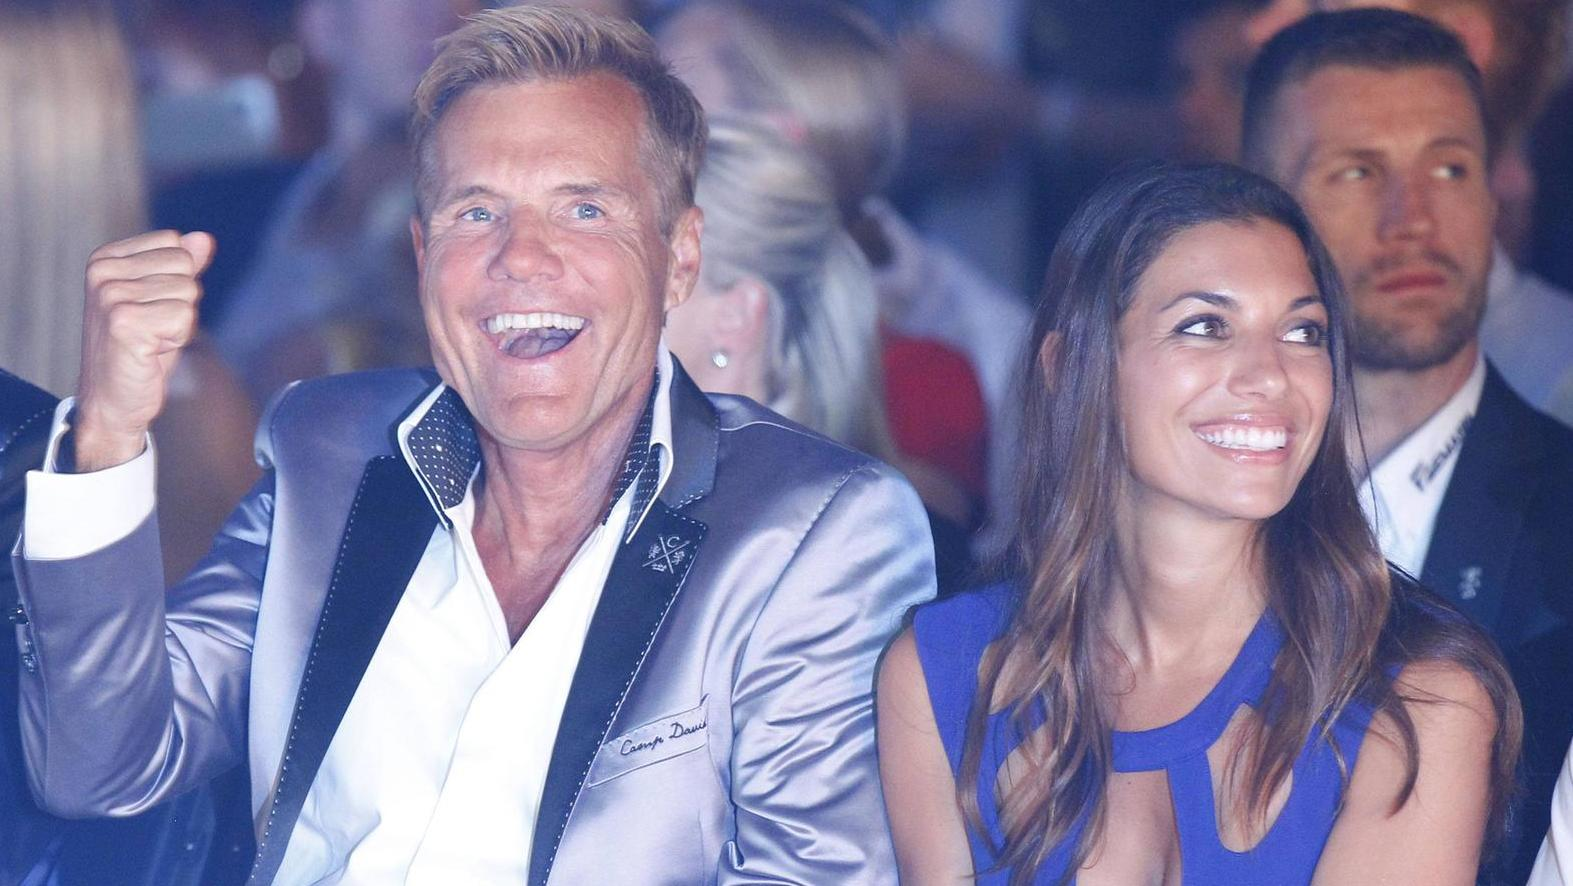 The wife of Dieter Bohlen Carina uses a tattoo of love for ...